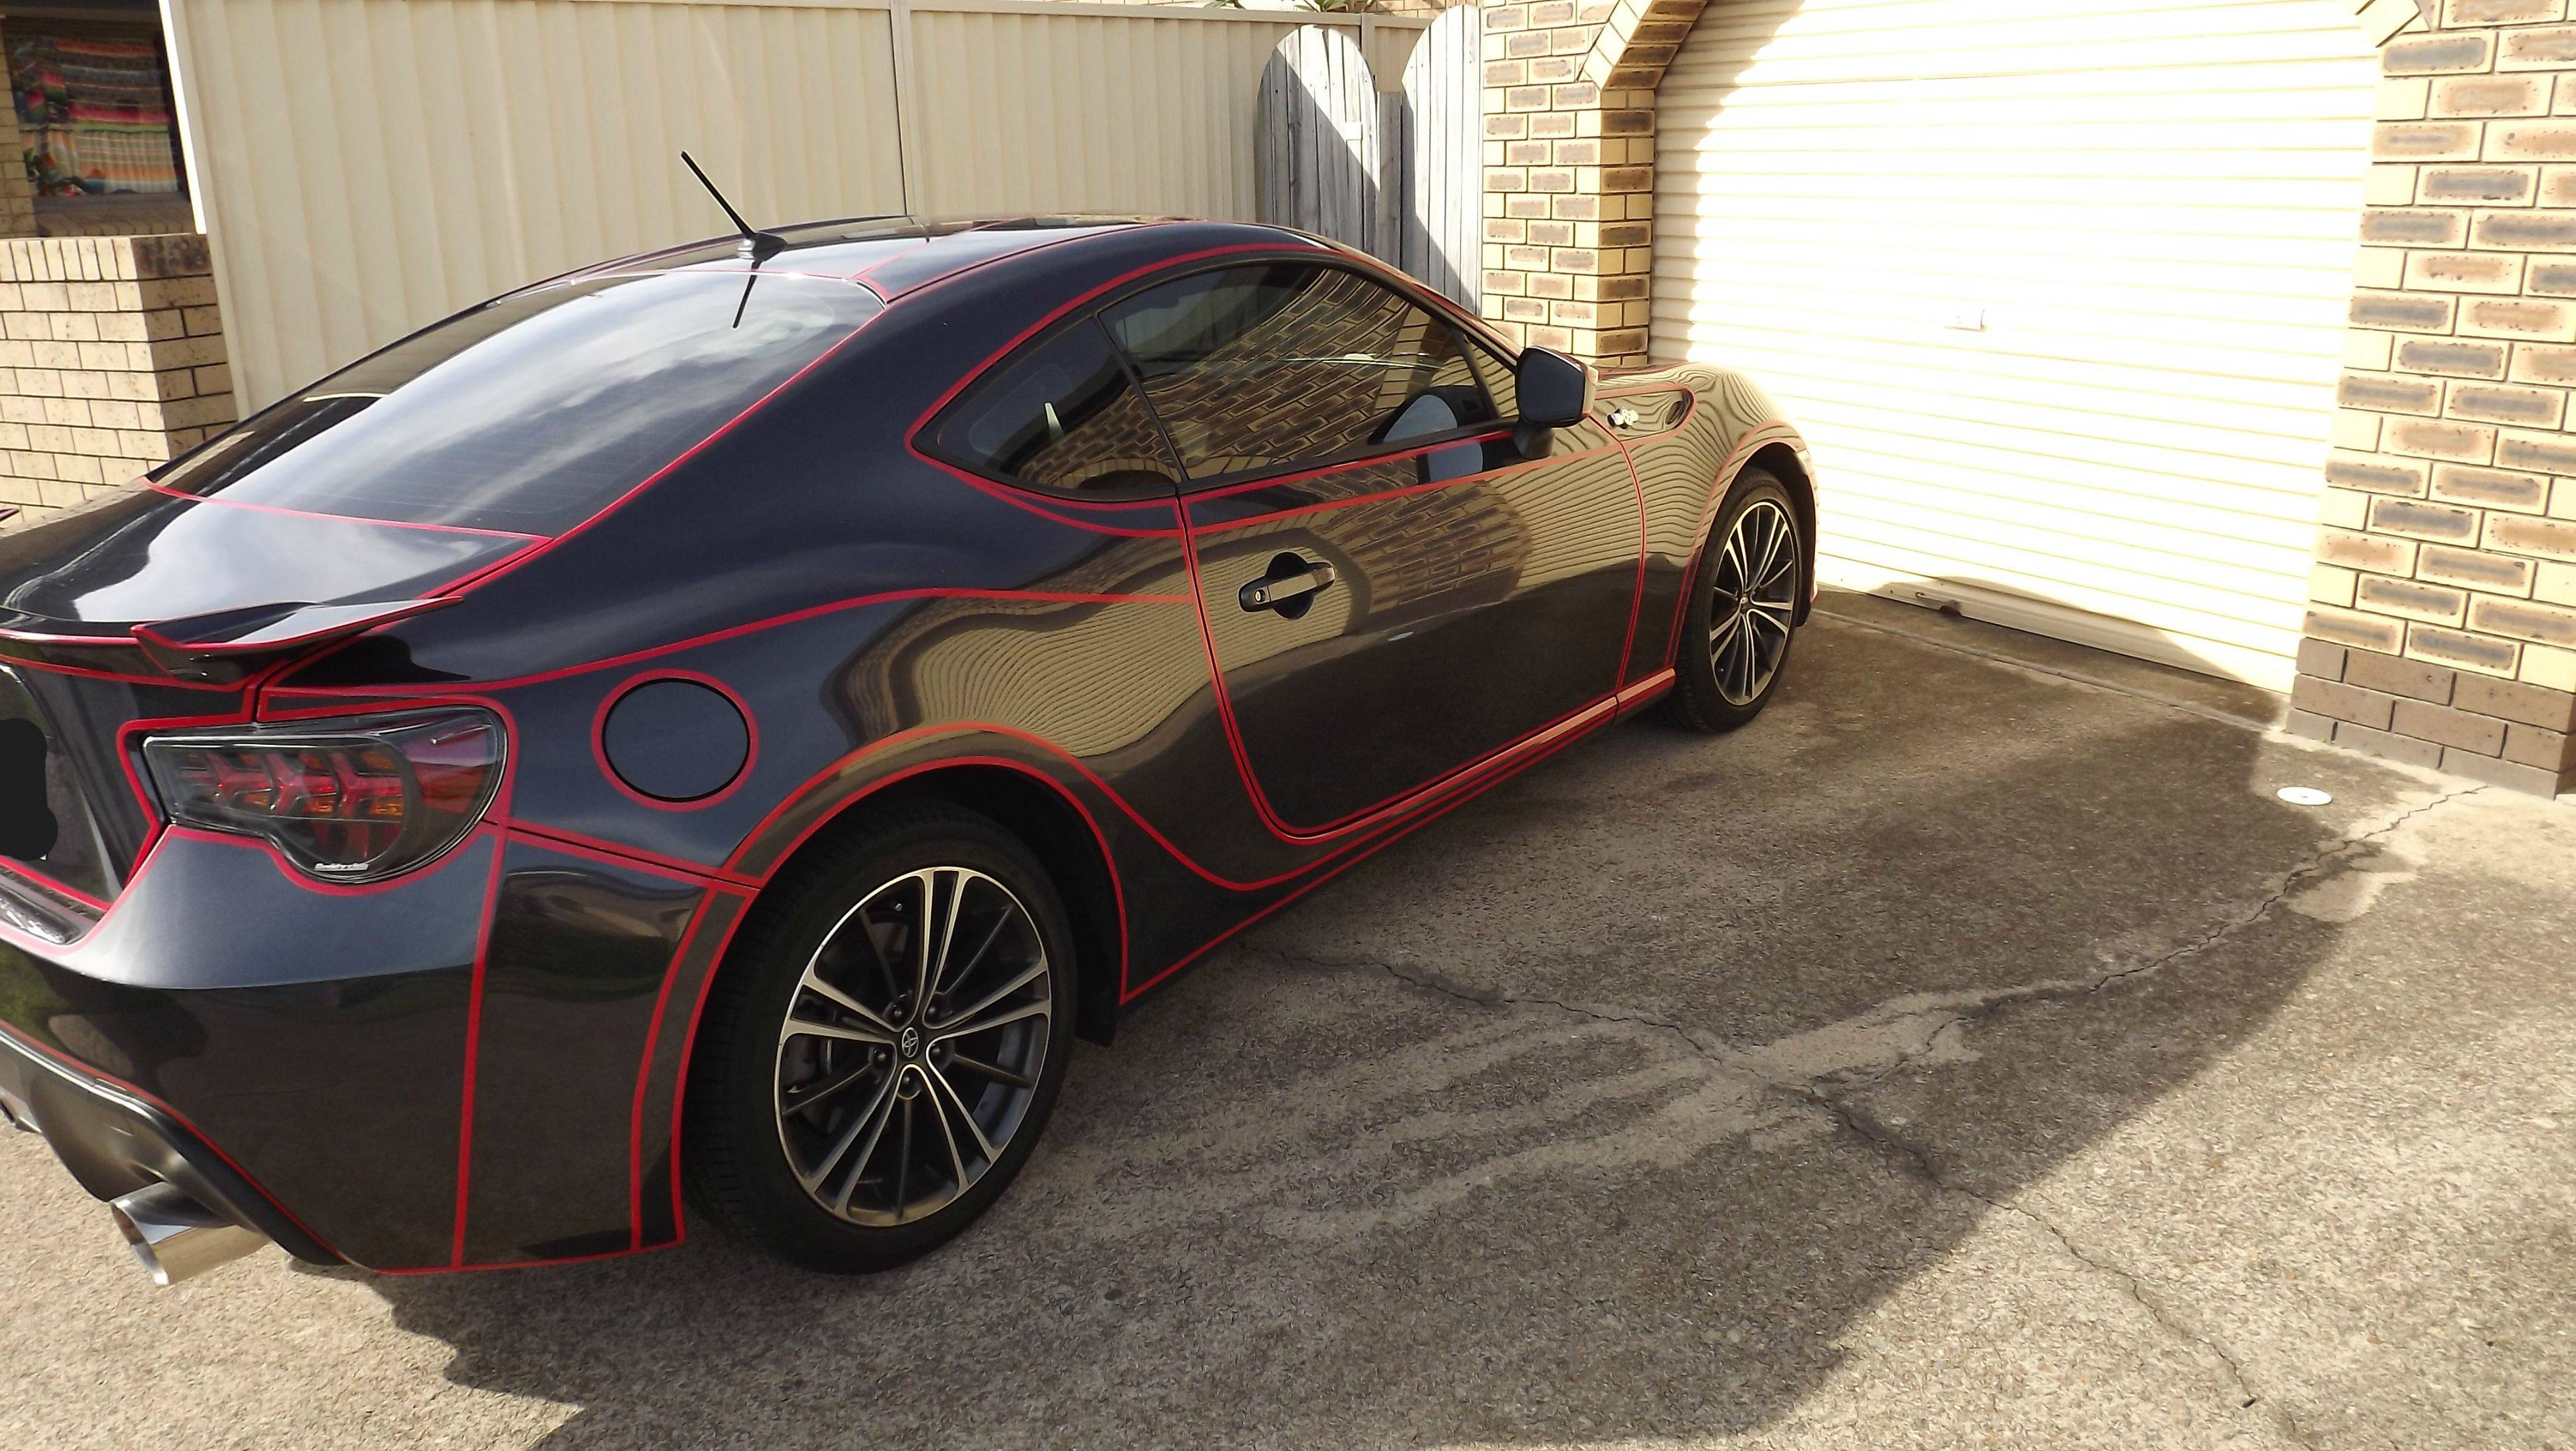 Guy Makes Tron Car Using Reflective Vinyl Tape And It's Awesome